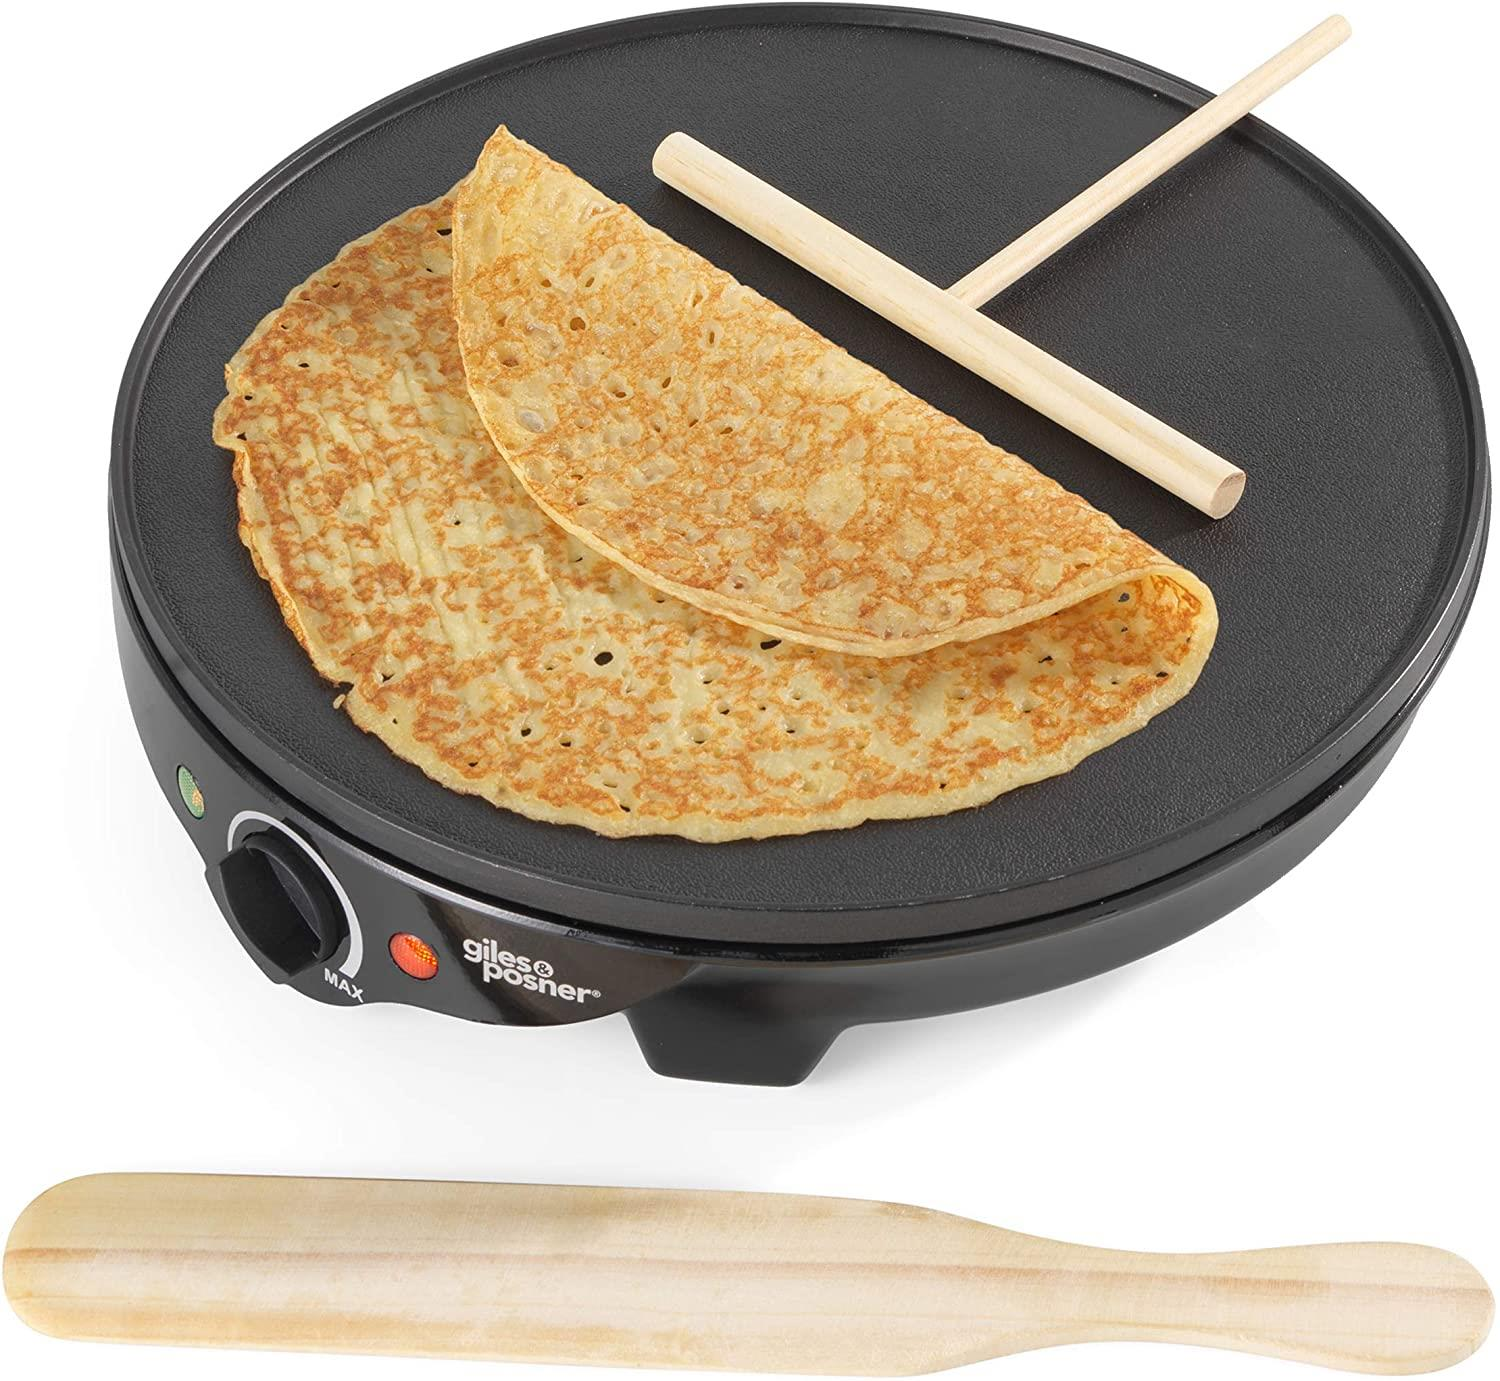 Giles & Posner  1300 W Electric Non Stick Plate Crepe Maker Pancakes, Crepes and Galettes in Minutes - smrt-life.com